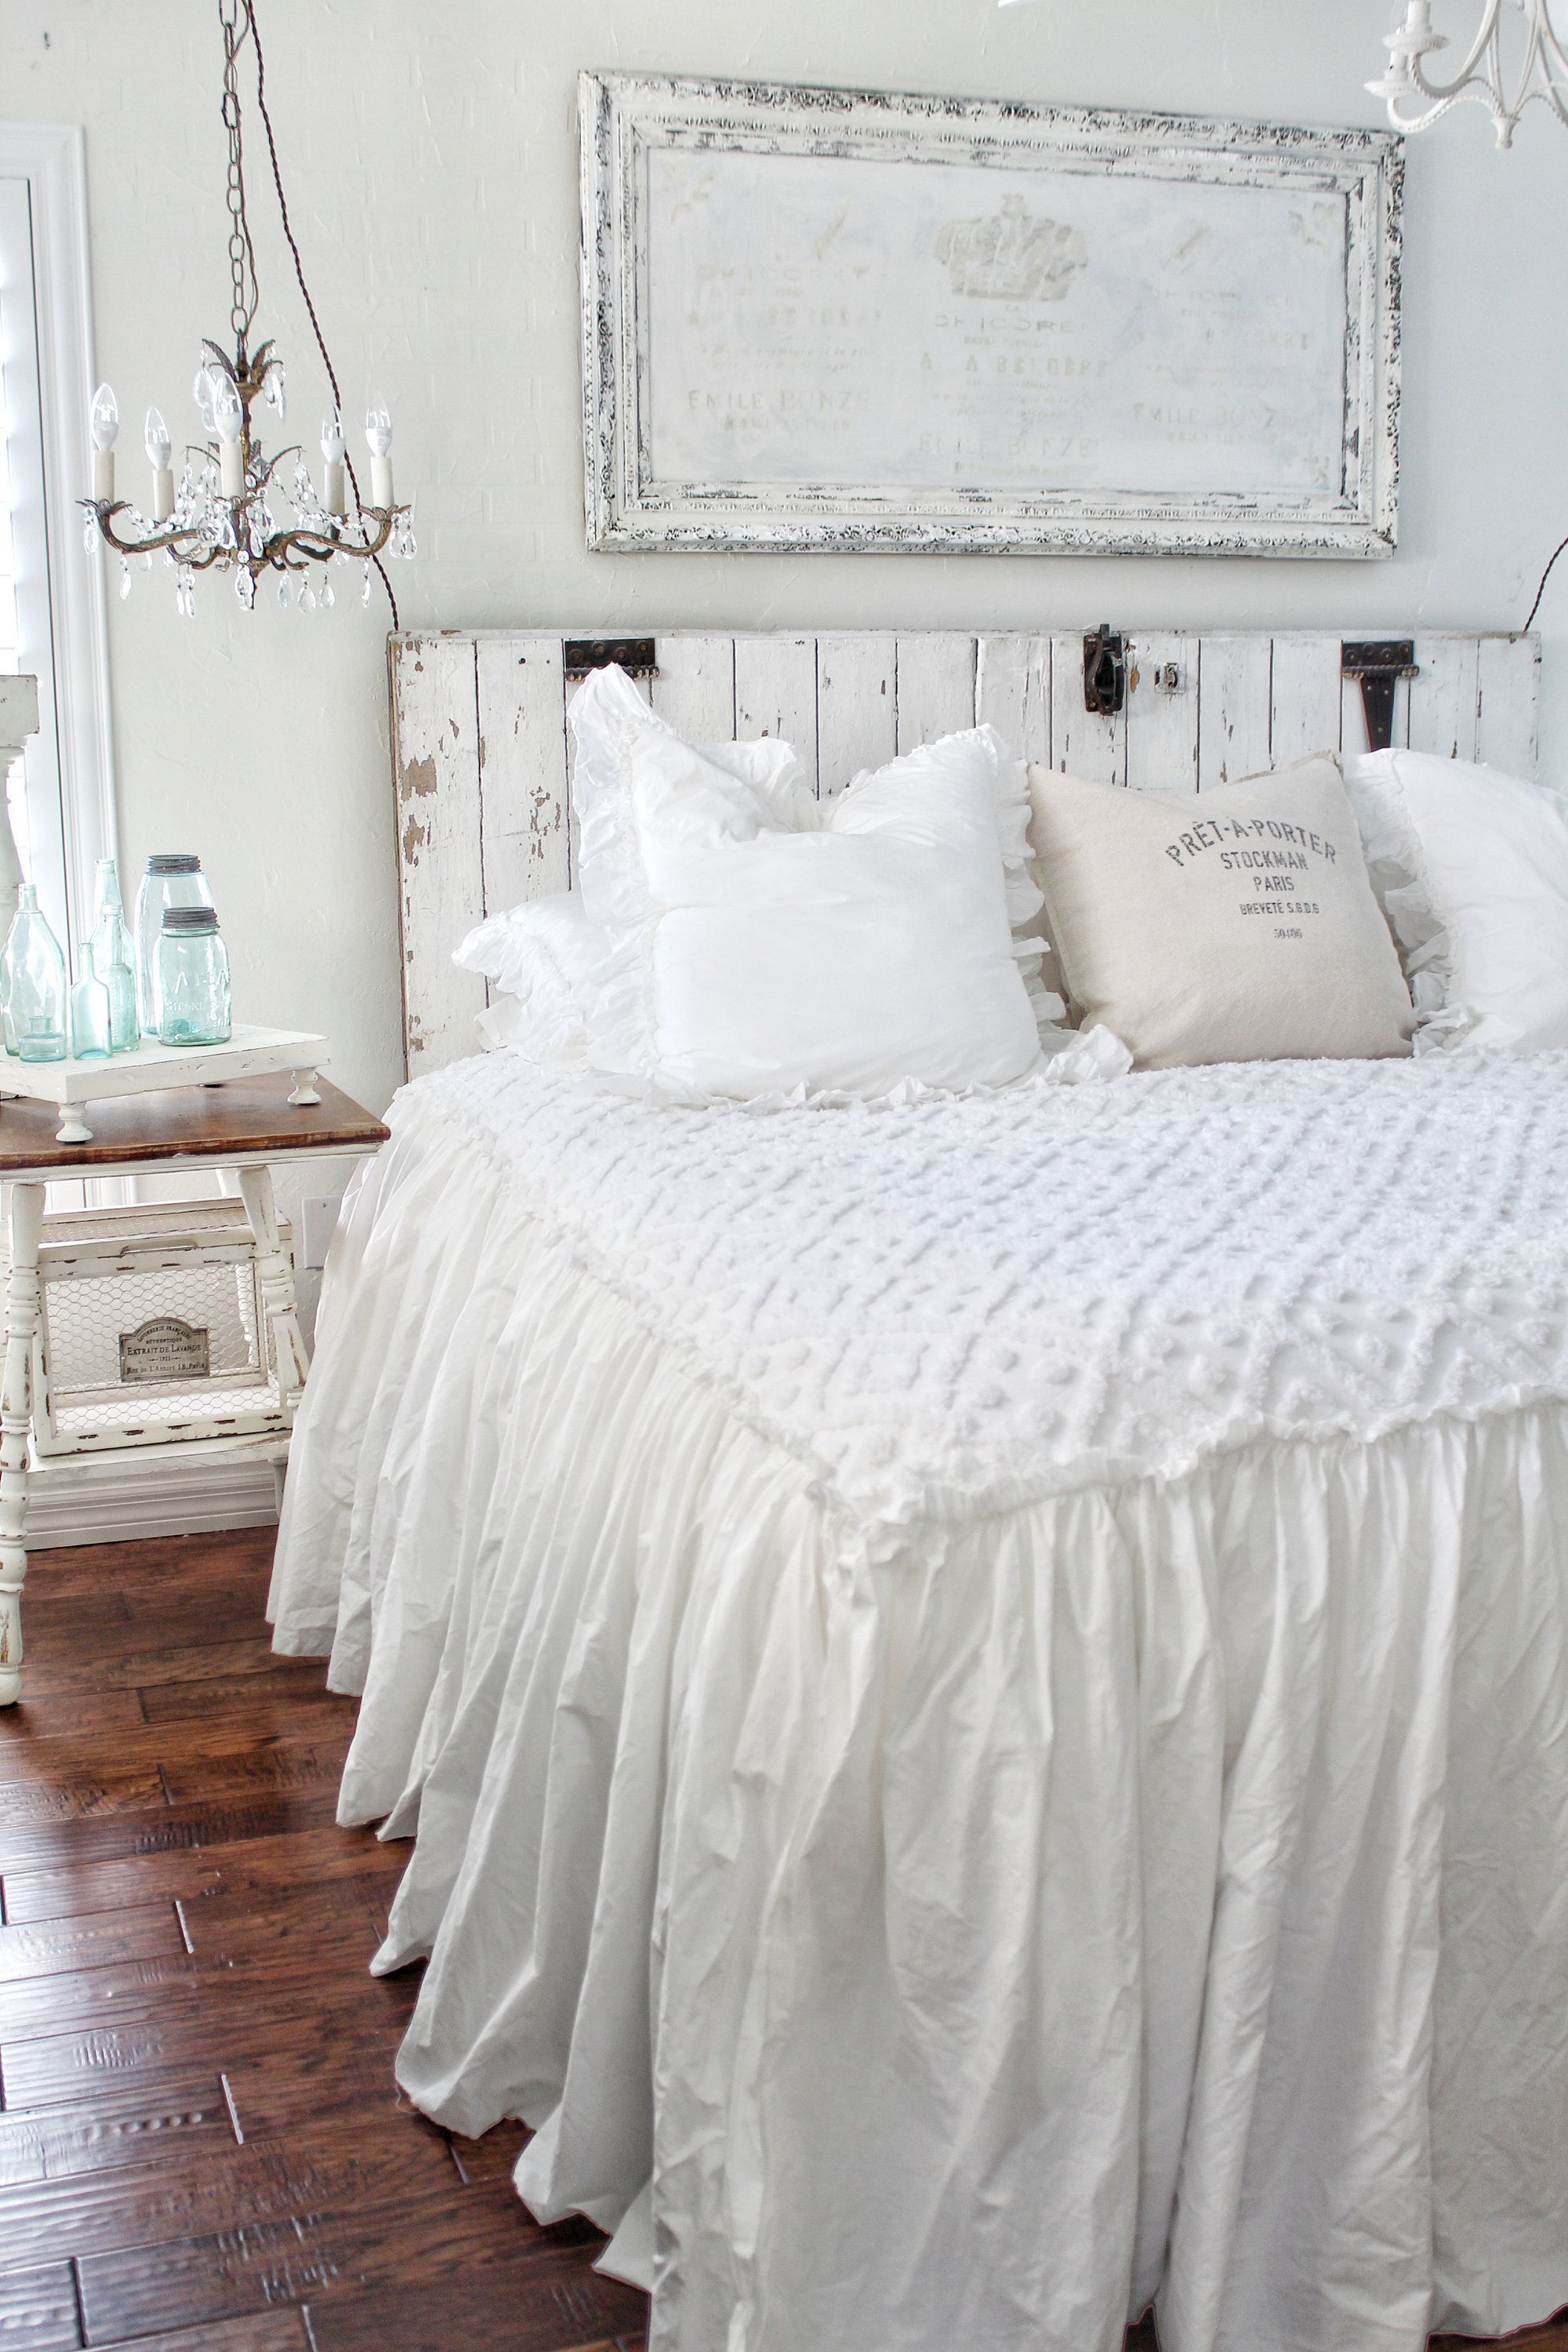 Fantastic Ruffled Chenille Coverlet Bedspread Shabby Chic Bedding Download Free Architecture Designs Intelgarnamadebymaigaardcom